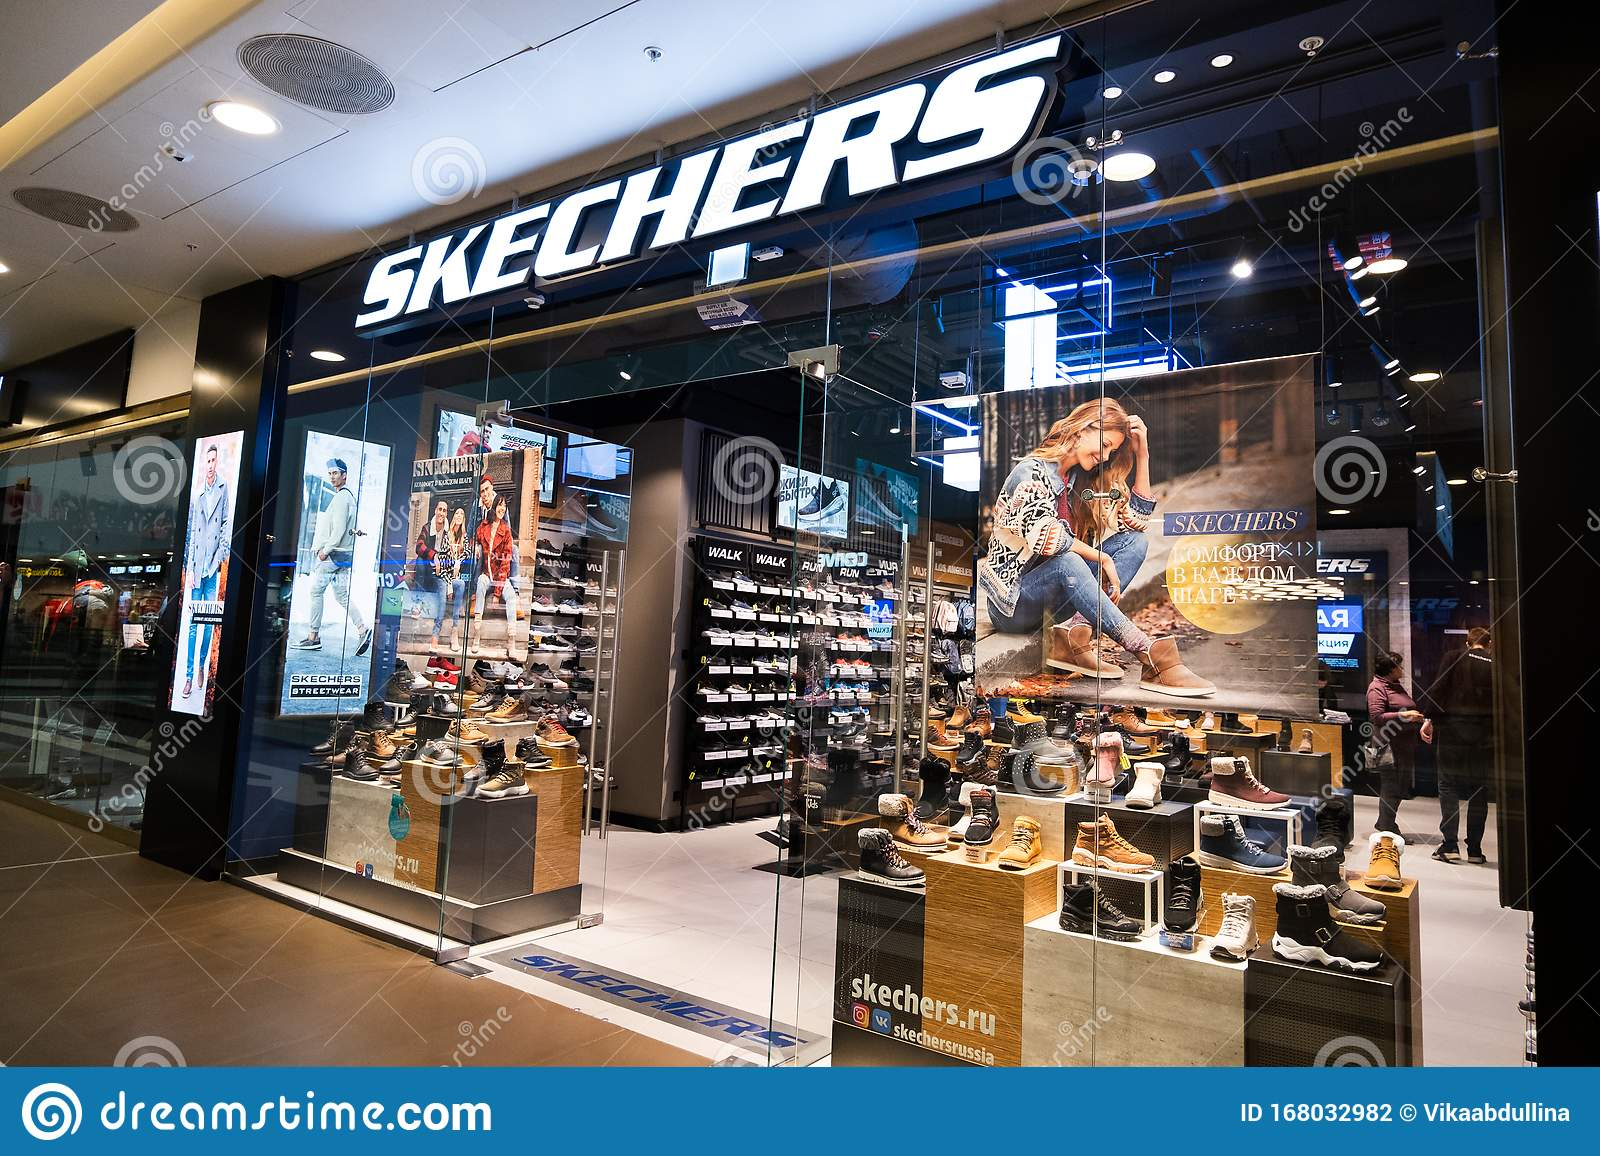 Templado estropeado Meandro  buy > skechers outlet near me hours, Up to 71% OFF